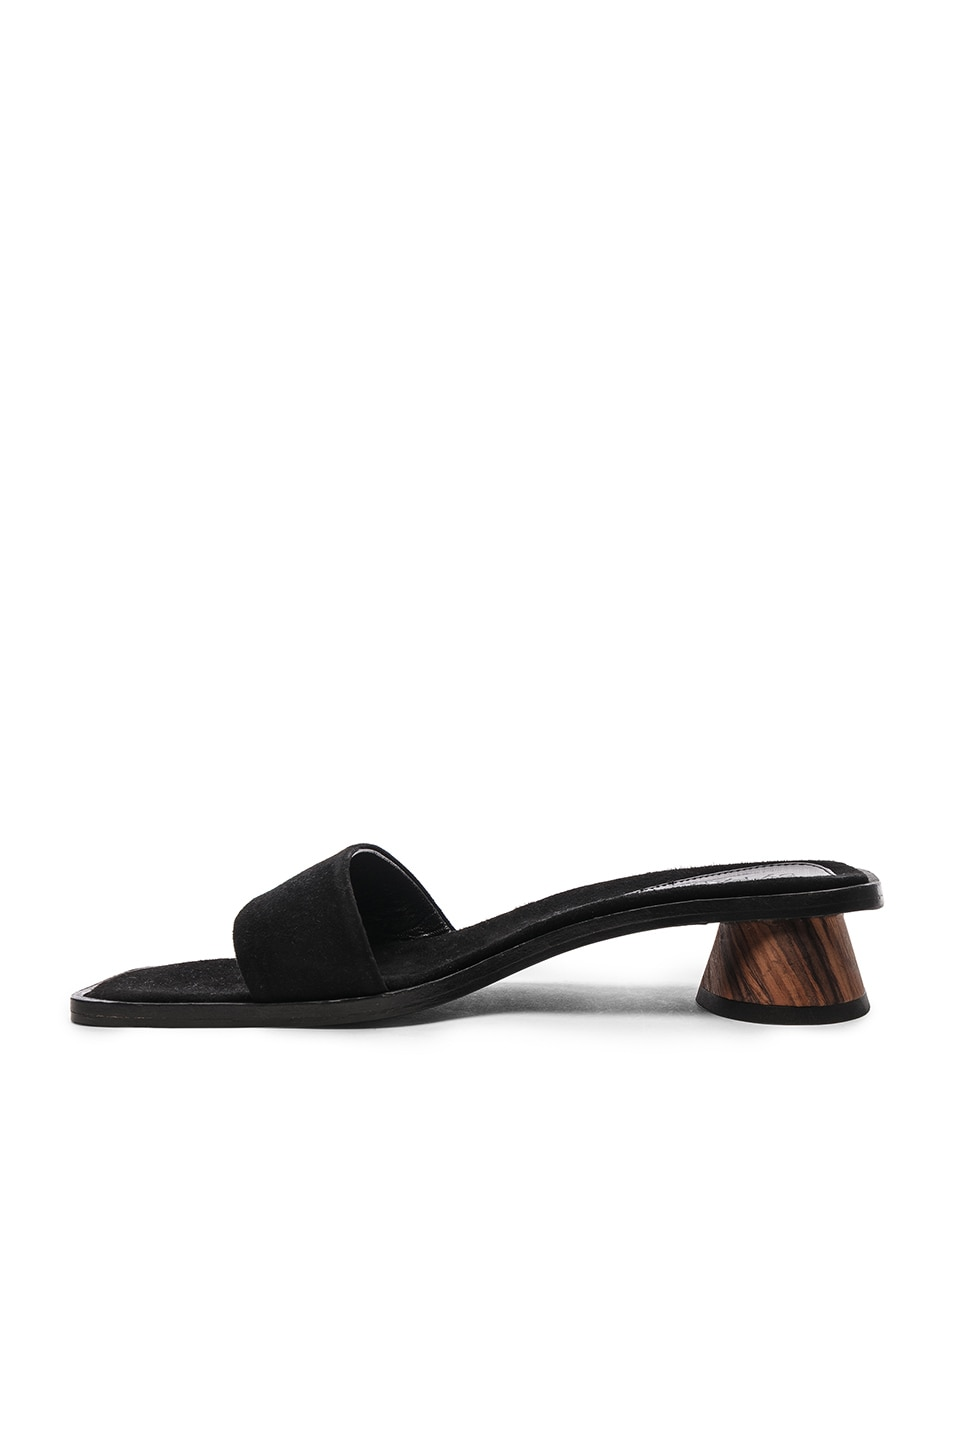 Image 5 of By Far Sonia Sandal in Black Suede